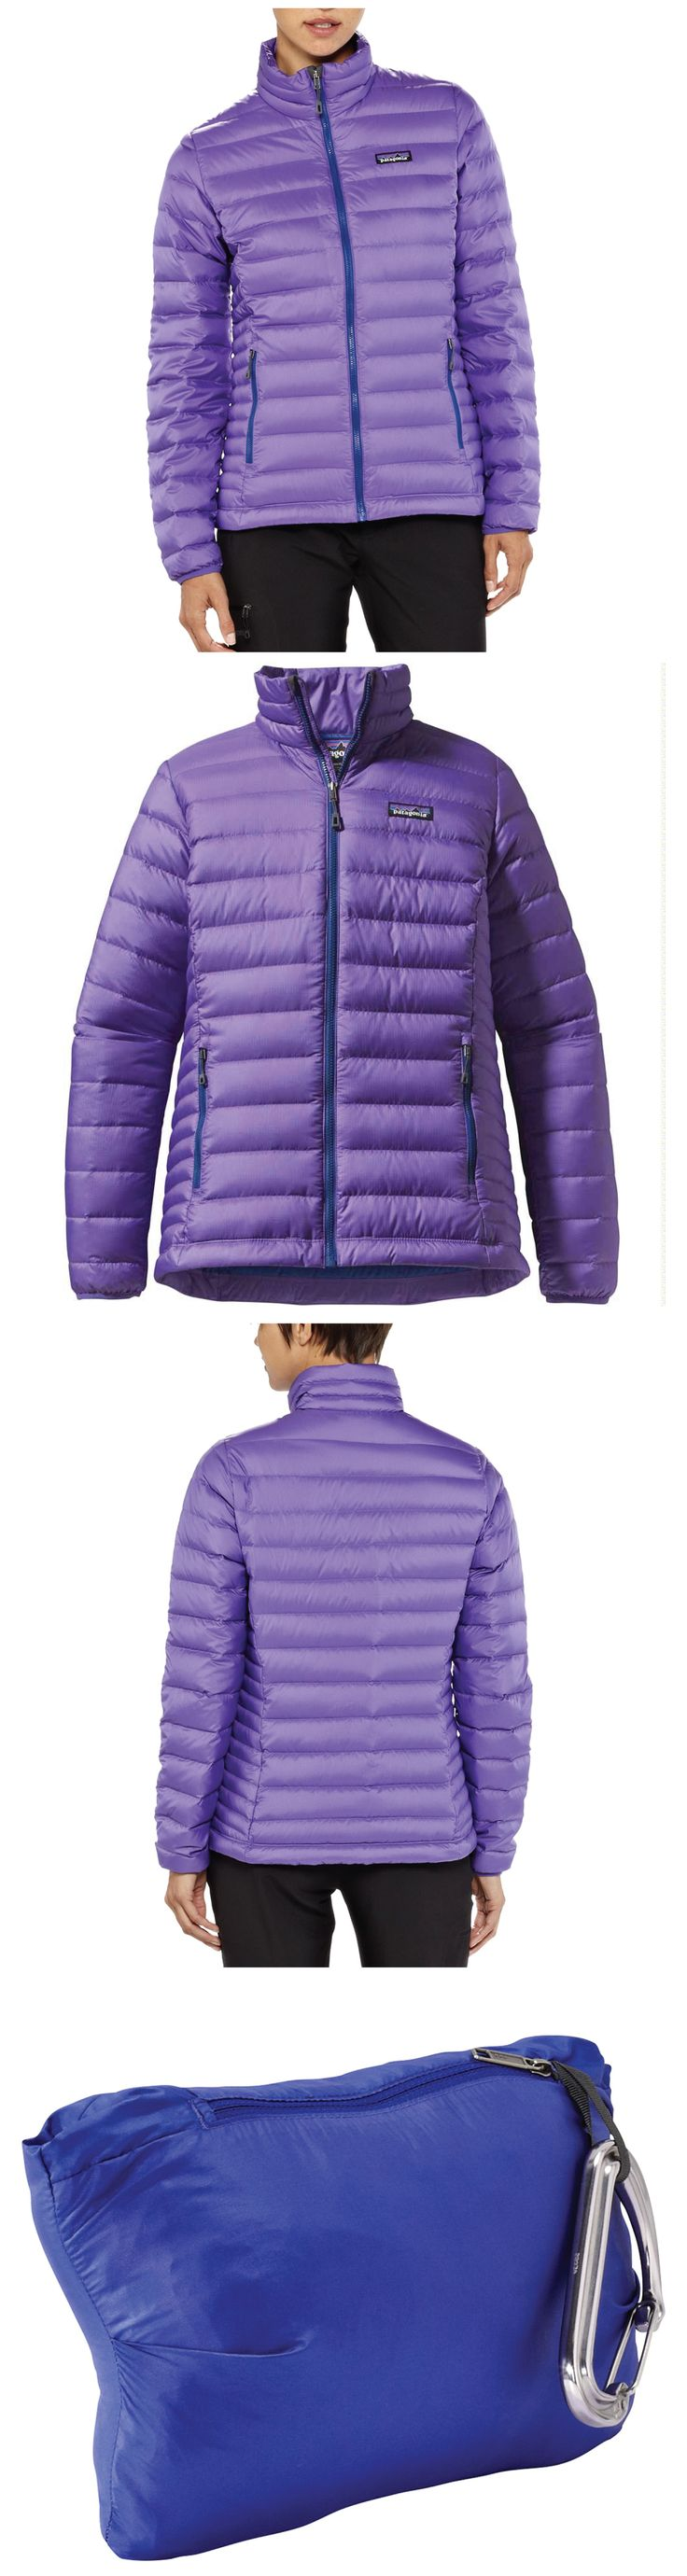 Perfect down jacket as an outer layer when the weather is above 30 degrees and not windy. Amazingly lightweight enough to wear under a ski coat when the temperature drops below 12 or its windy or rainy. Patagonia Down Sweater.